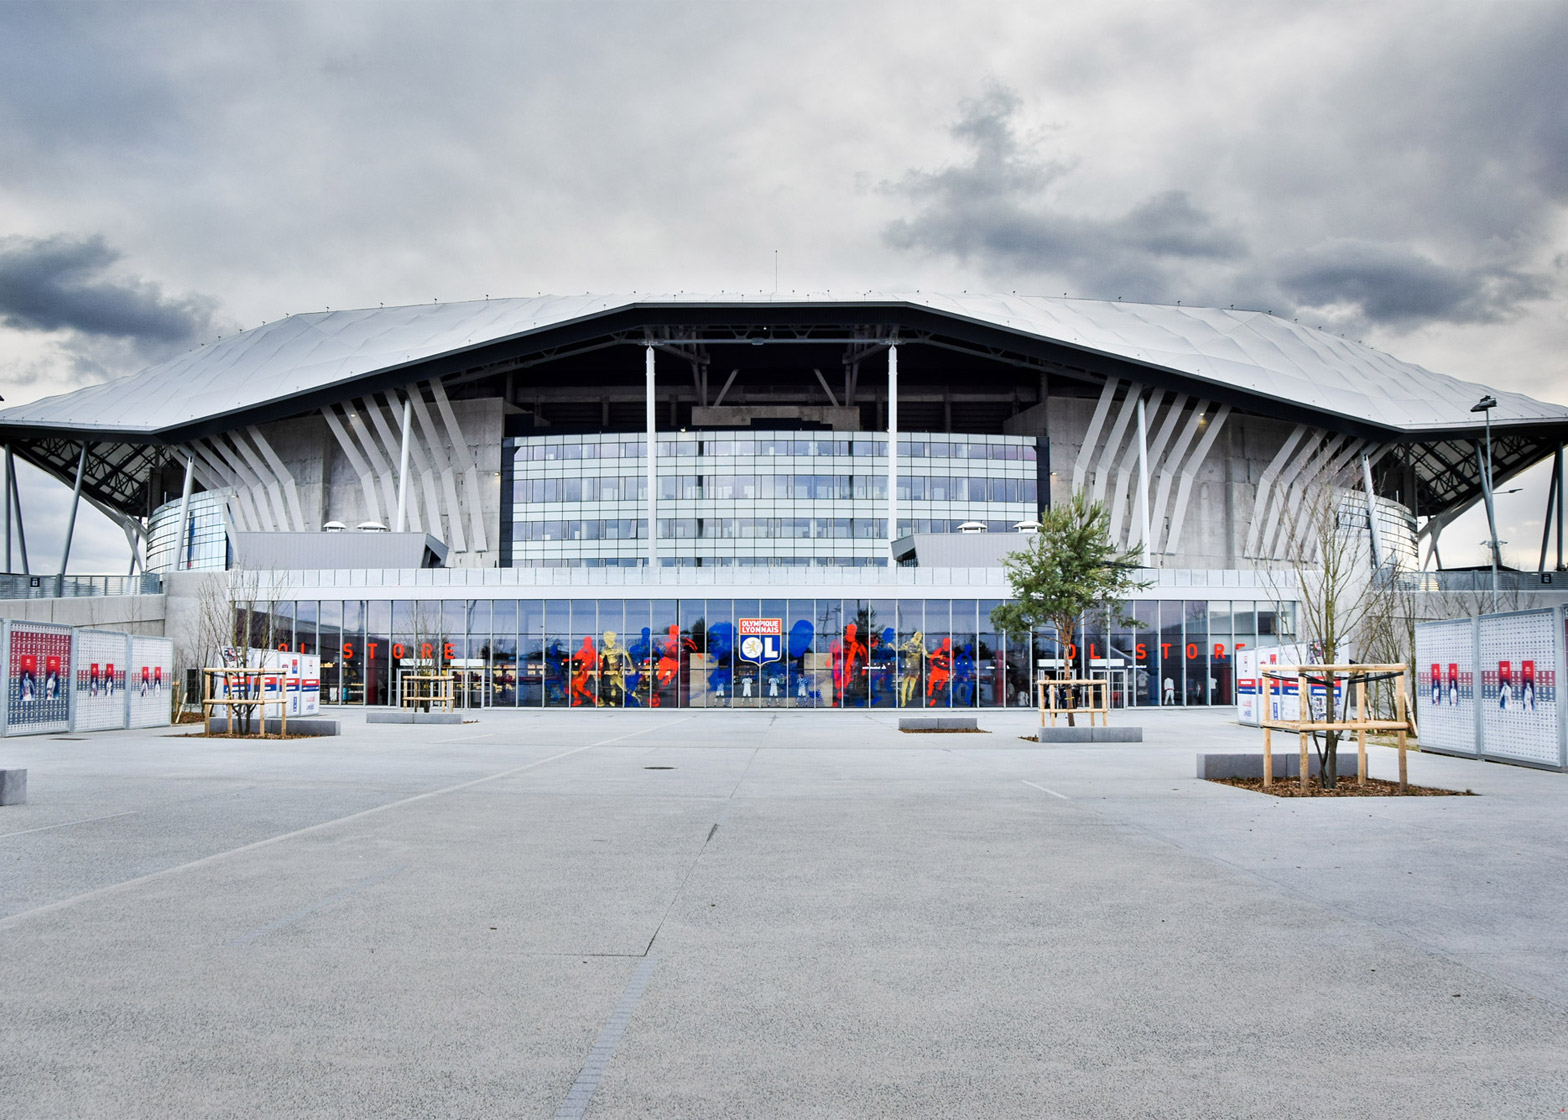 Parc Olympique Lyonnais by Populous in Lyon, France, stadium architecture for Euro 2016